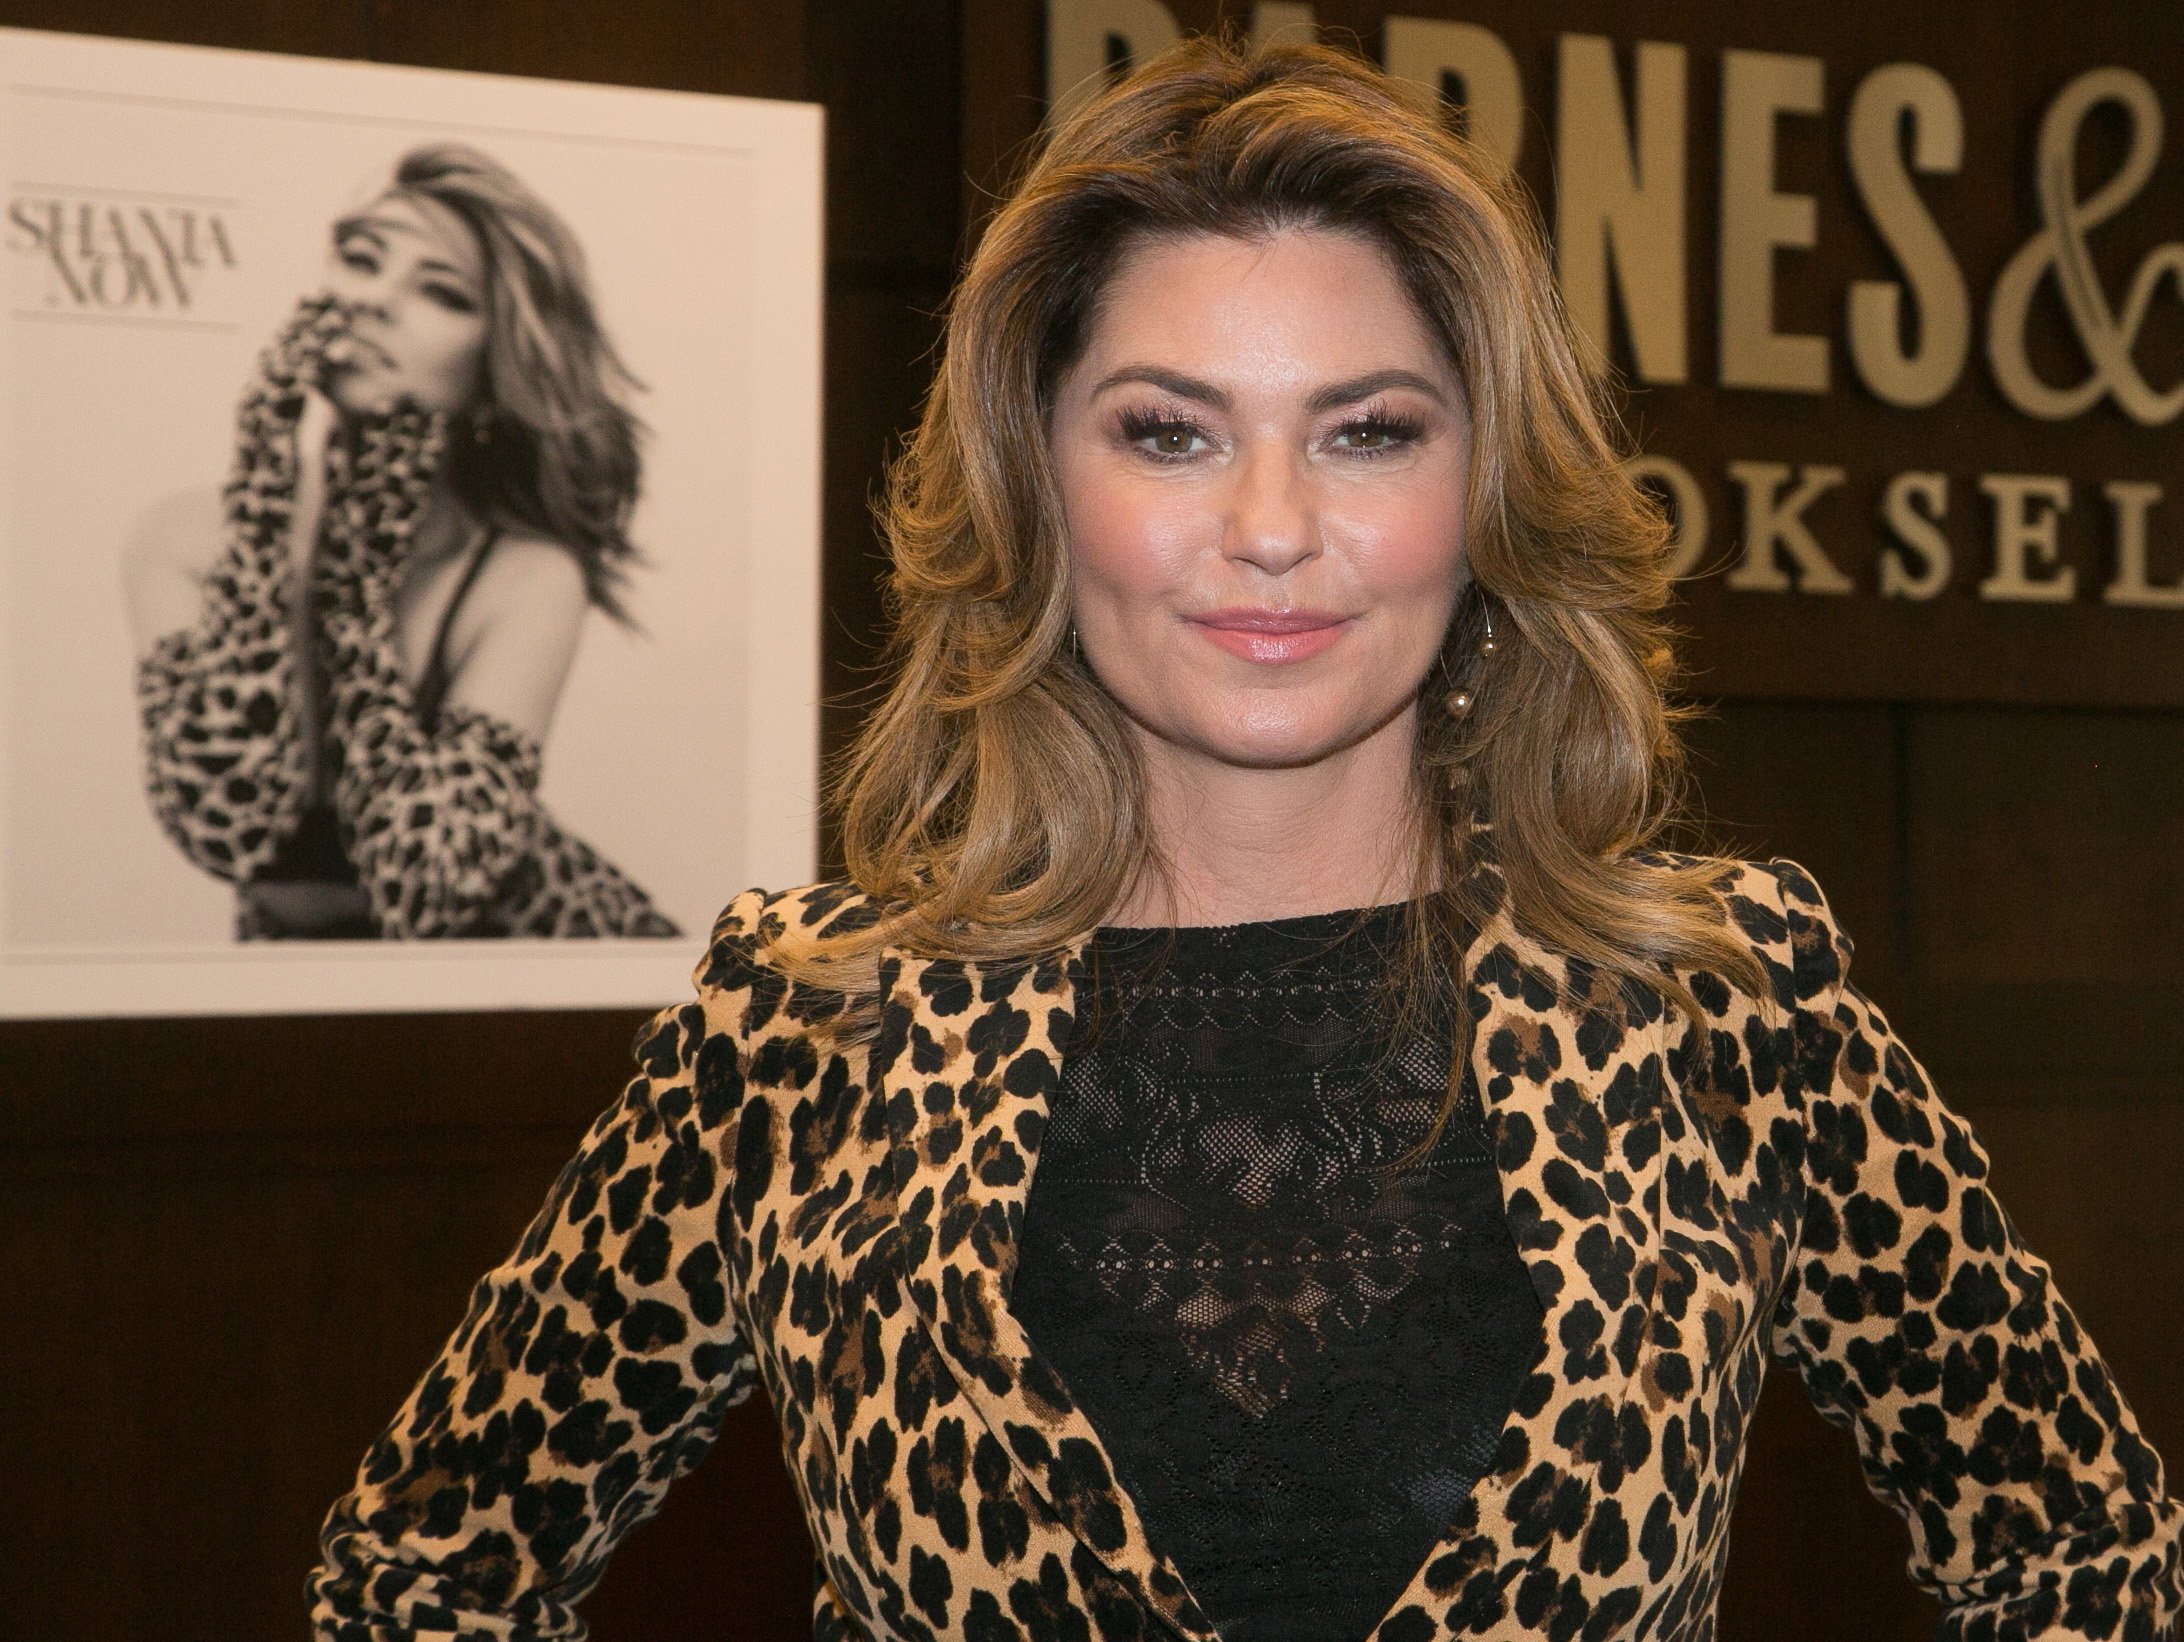 <p>After a 15-year hiatus from the limelight singer Shania Twain has made a high-voltage return   with a hip new album and sleek new look.</p> <p>Proving that she still hasn't lost her touch for donning head-toe-toe leopard, the 52-year-old rocked a pantsuit decorated entirely with the print at the official signing of her new record 'Up' in Los Angeles last week.</p> <p>Twain paired her bold look with a voluminous blowout, pink lip and smokey eye, a new look for the Grammy-award winner who made crimped hair and frosted lipstick something of a signature beauty look back in the '90s.</p> <p>On the red-carpet Twain's hair and makeup moments have always been just as iconic as her songs, and we've rounded up 10 of the country music singer's best looks throughout the years to celebrate her return to the spotlight.</p> <p>Click through to see the beauty evolution of Shania Twain.</p>